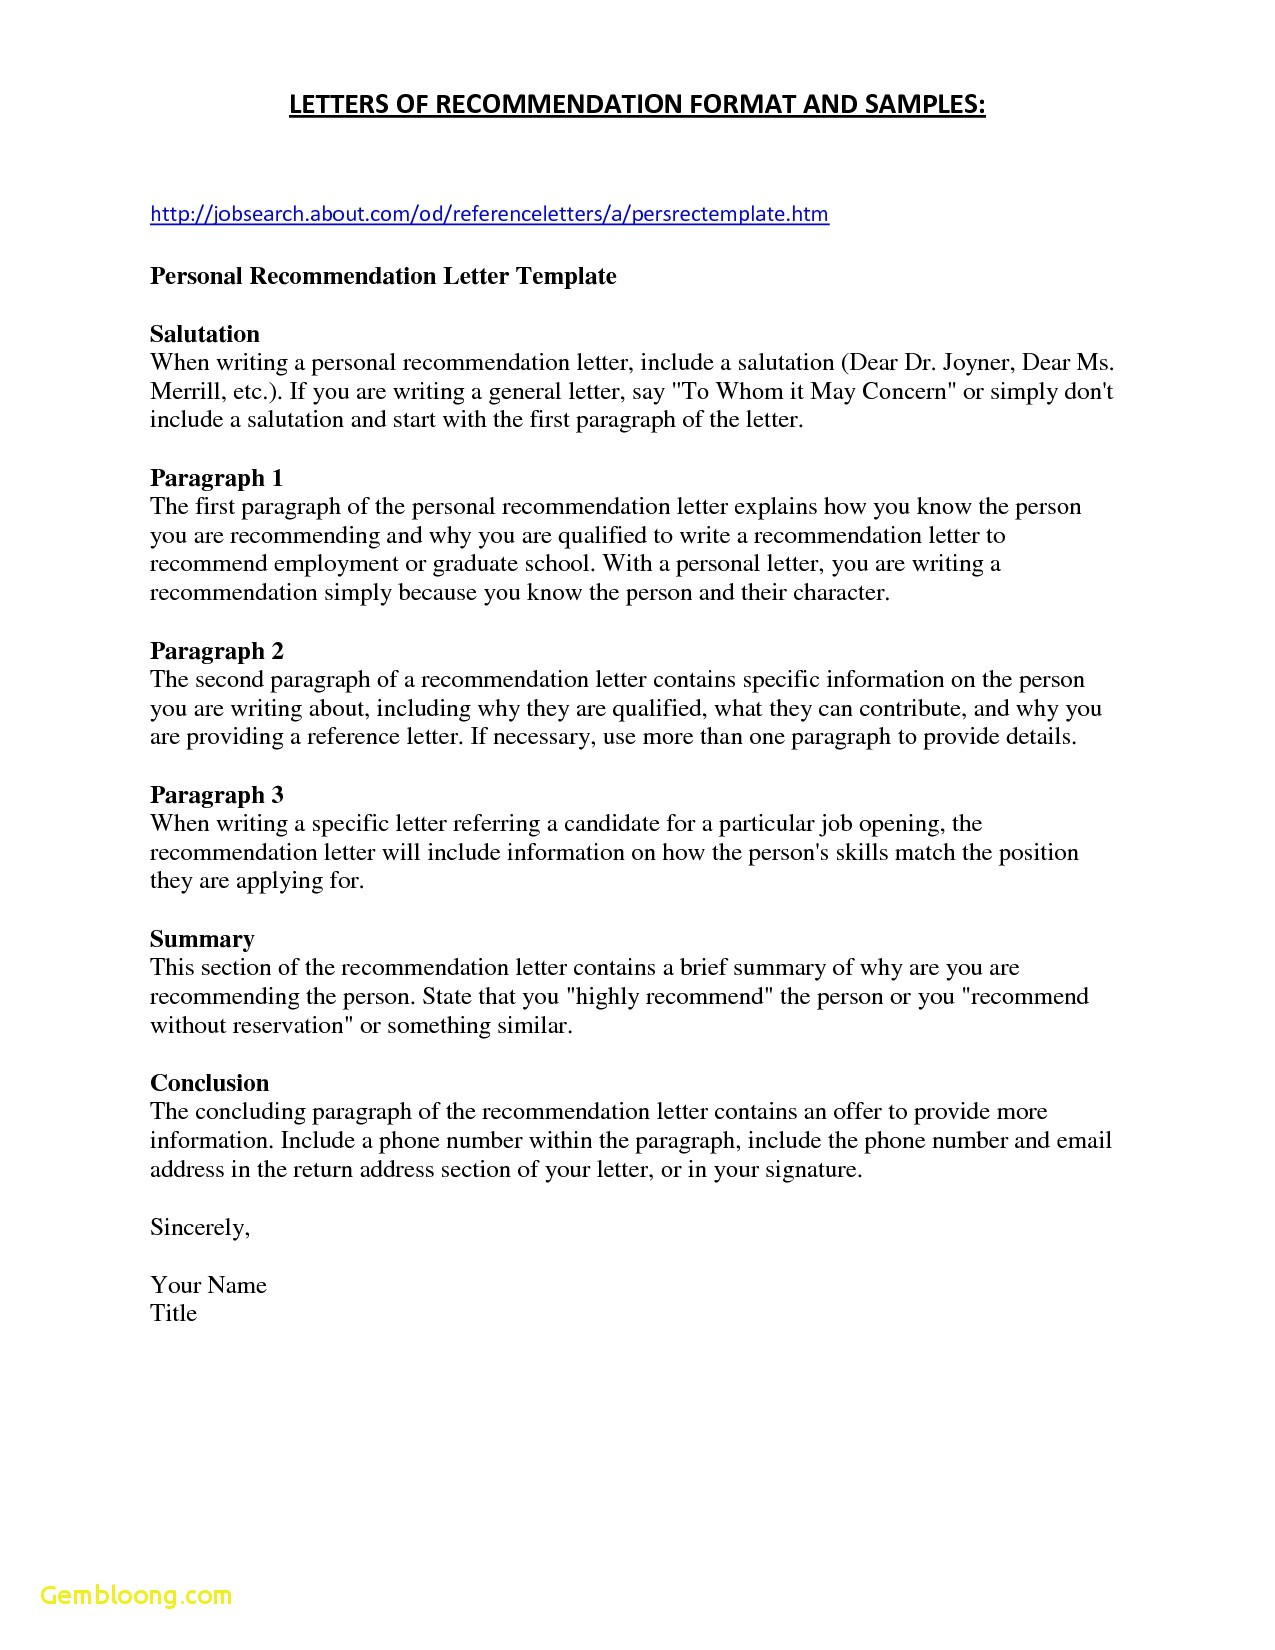 email letter of recommendation template example-Letter Re mendation Template for College Admission New College Admission Resume Sample Download Sample Reference Letter 13-n